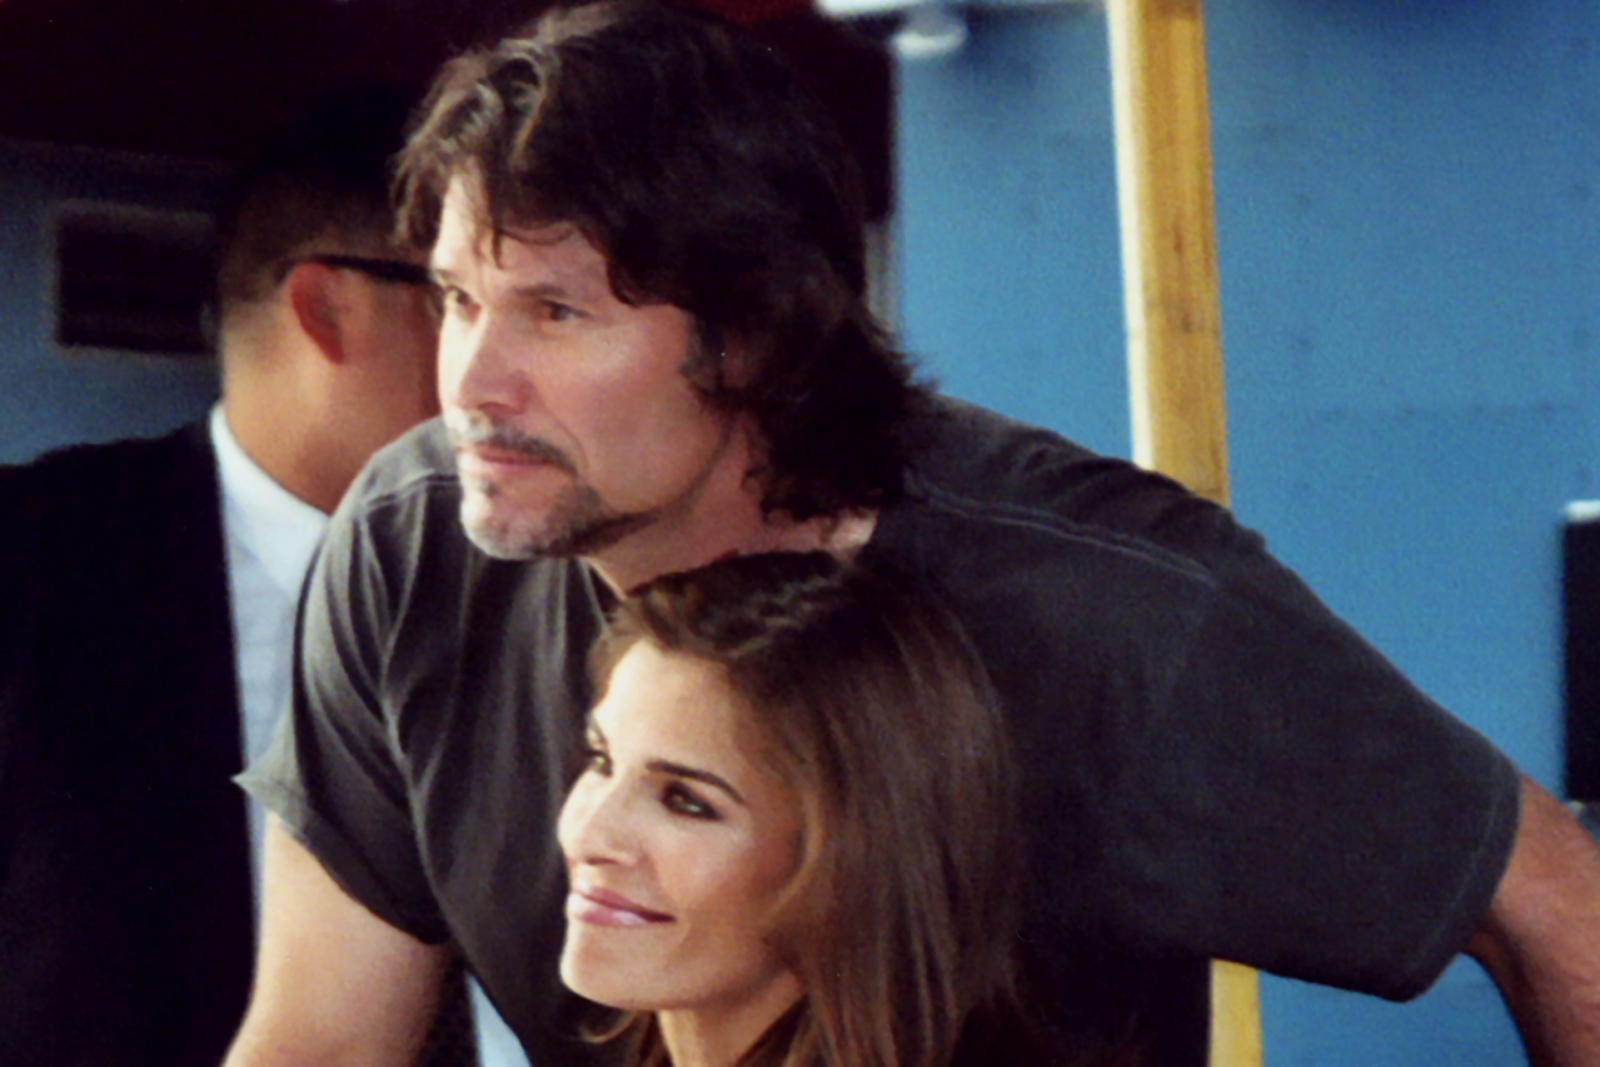 Peter Reckell andKristian Alfonso at Fan Fest 04. Image uploaded onDecember 21, 2006 | Photos: Wikipedia/Jennifer/Peter Reckell and Kristian Alfonso/CC BY-SA 3.0